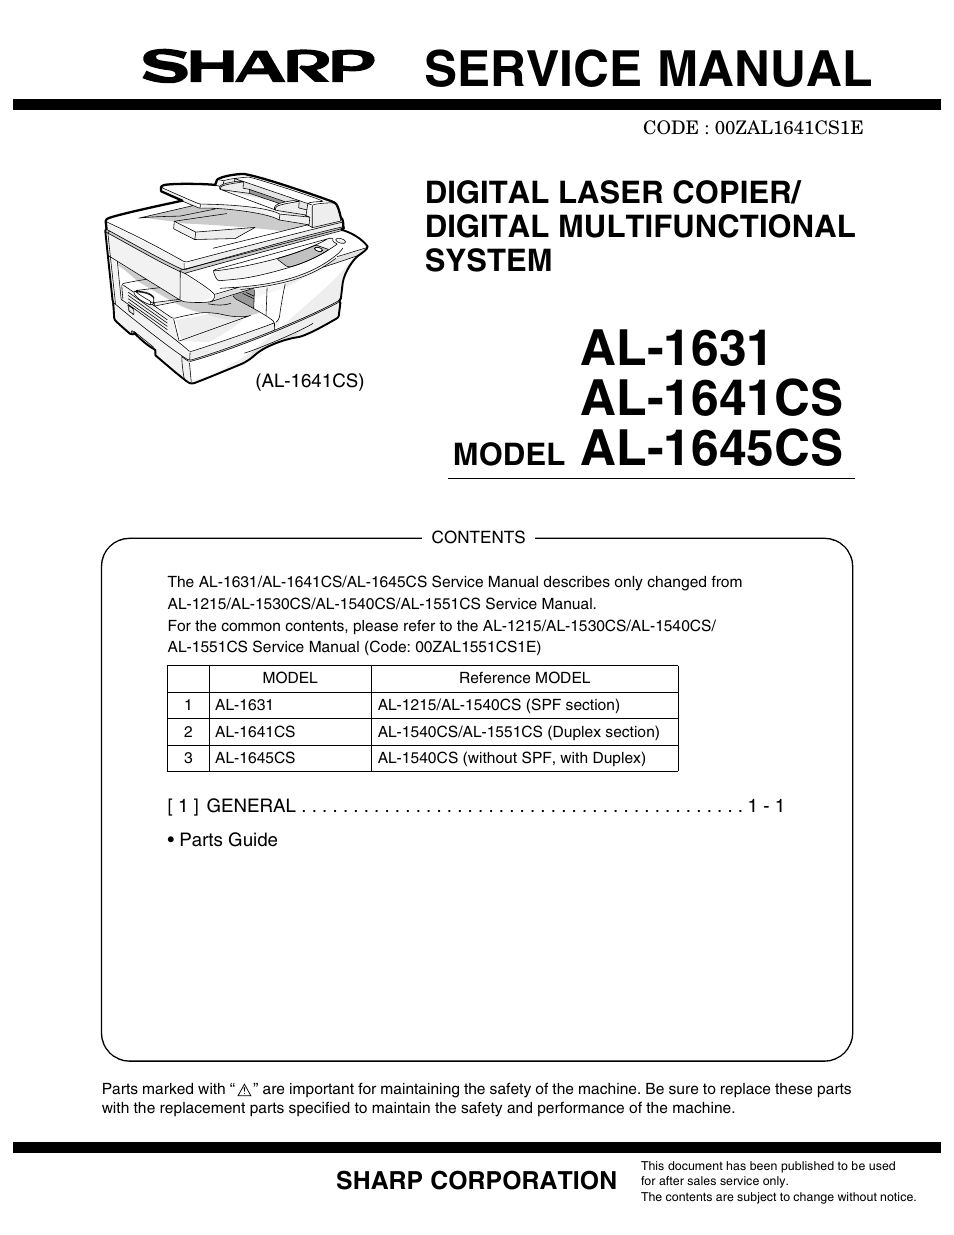 sharp al 1641cs user manual 20 pages also for al 1645cs al 1631 rh manualsdir com sharp copier manuals free sharp mfp manual